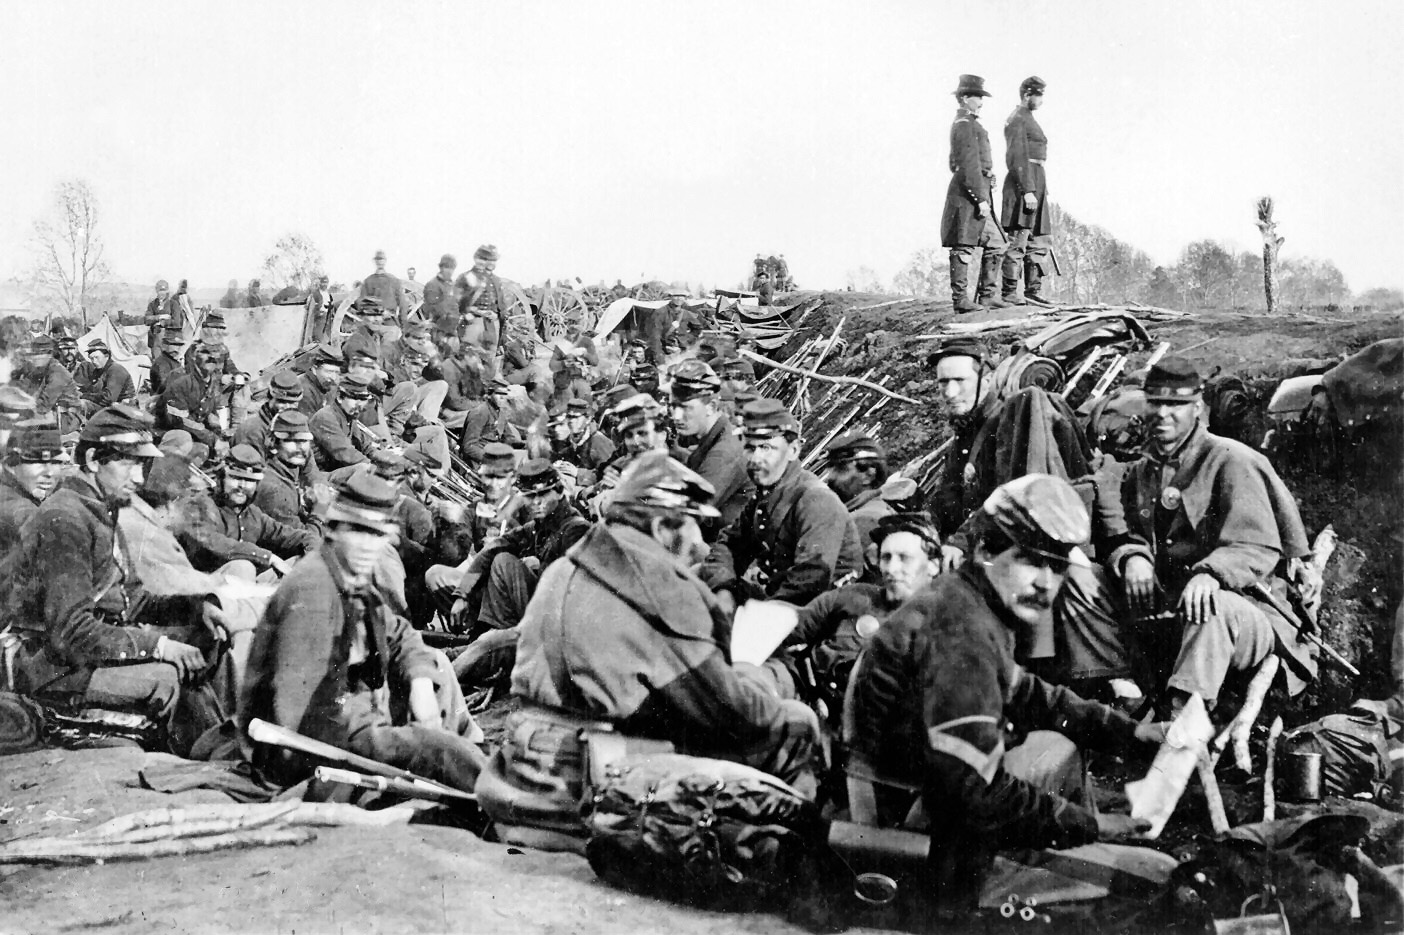 https://upload.wikimedia.org/wikipedia/commons/9/95/Union_soldiers_entrenched_along_the_west_bank_of_the_Rappahannock_River_at_Fredericksburg,_Virginia_%28111-B-157%29.jpg